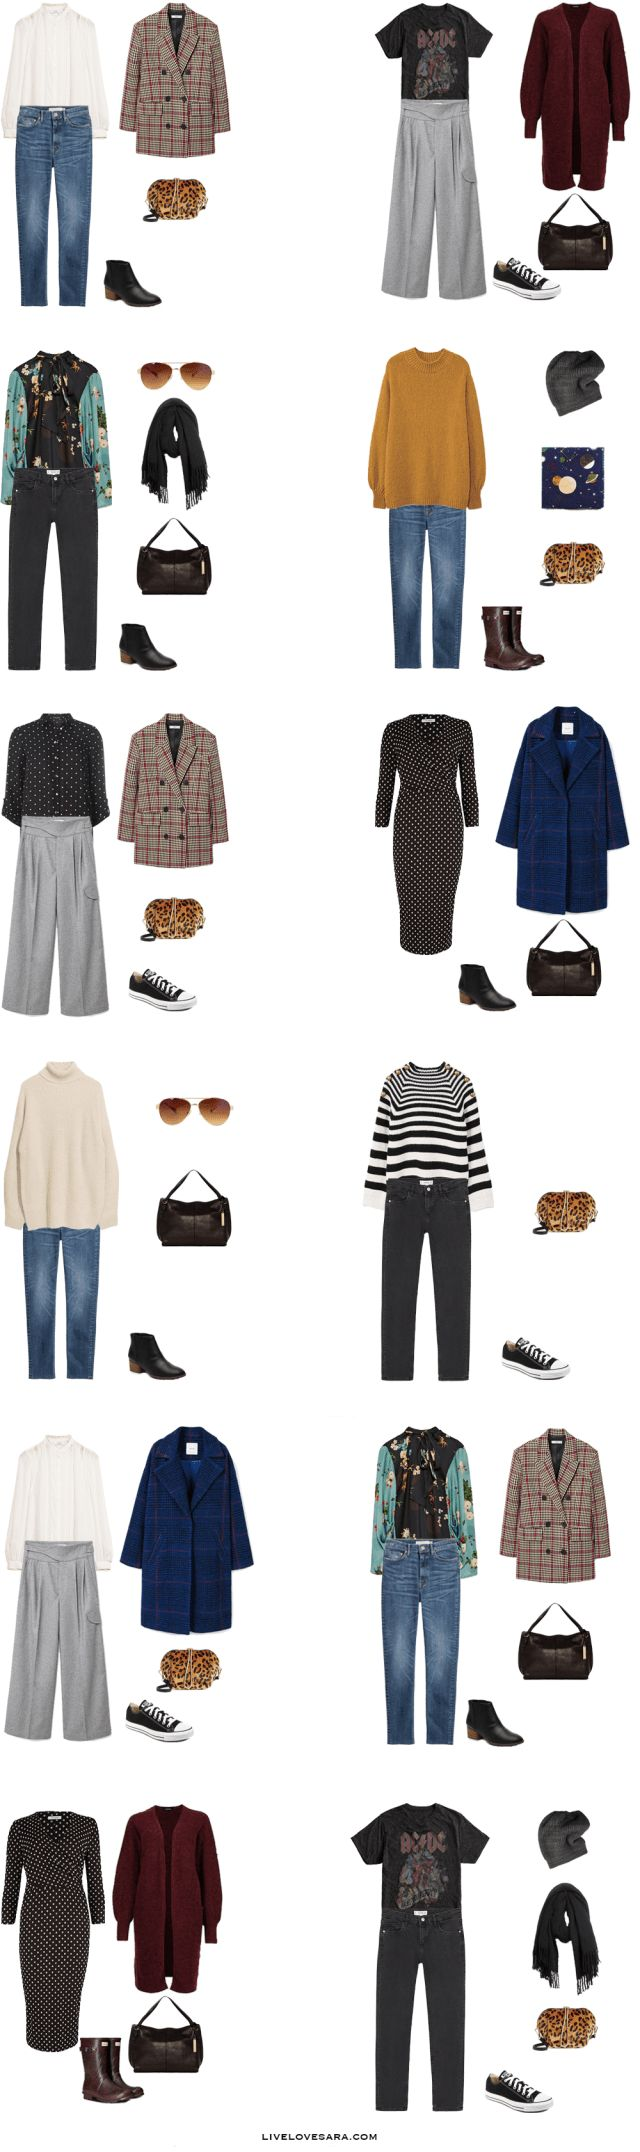 What to Pack for Glasgow, Scotland Packing Light List Outfit Options 1-12 #packinglight #packinglist #travellight #travel #livelovesara #capsule